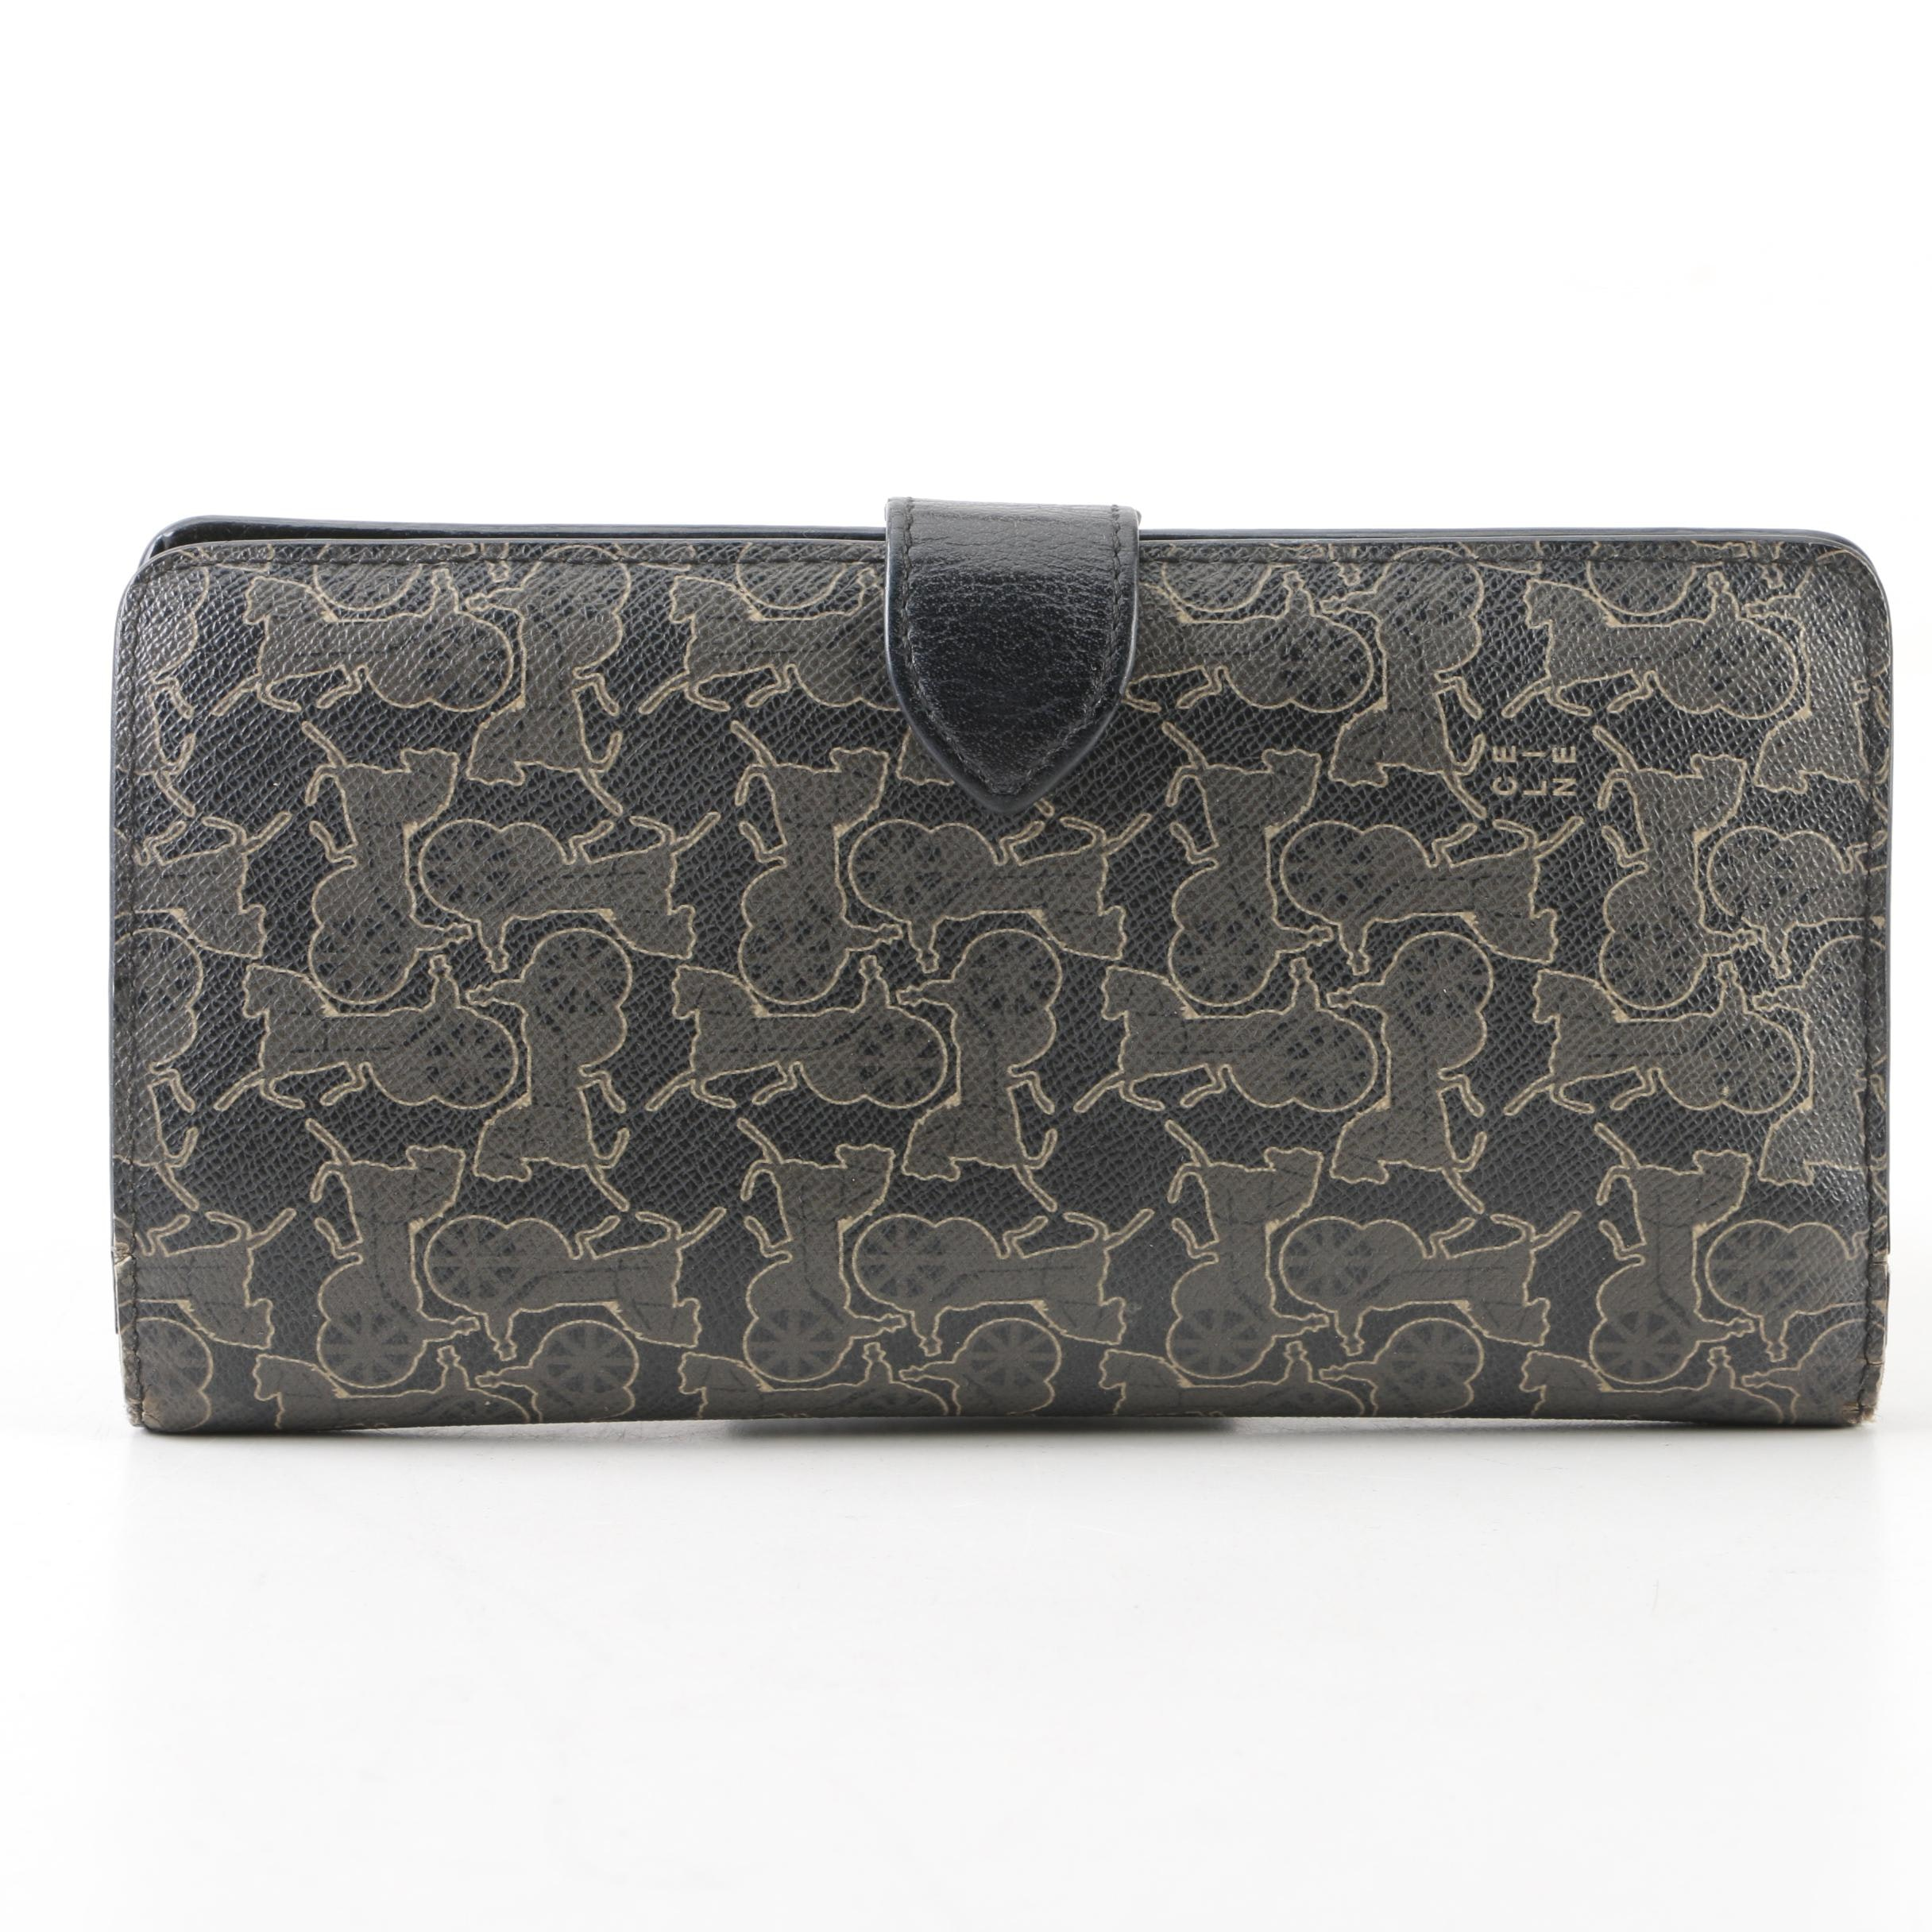 Céline Carriage Print Yen Holder Wallet with Leather Trim